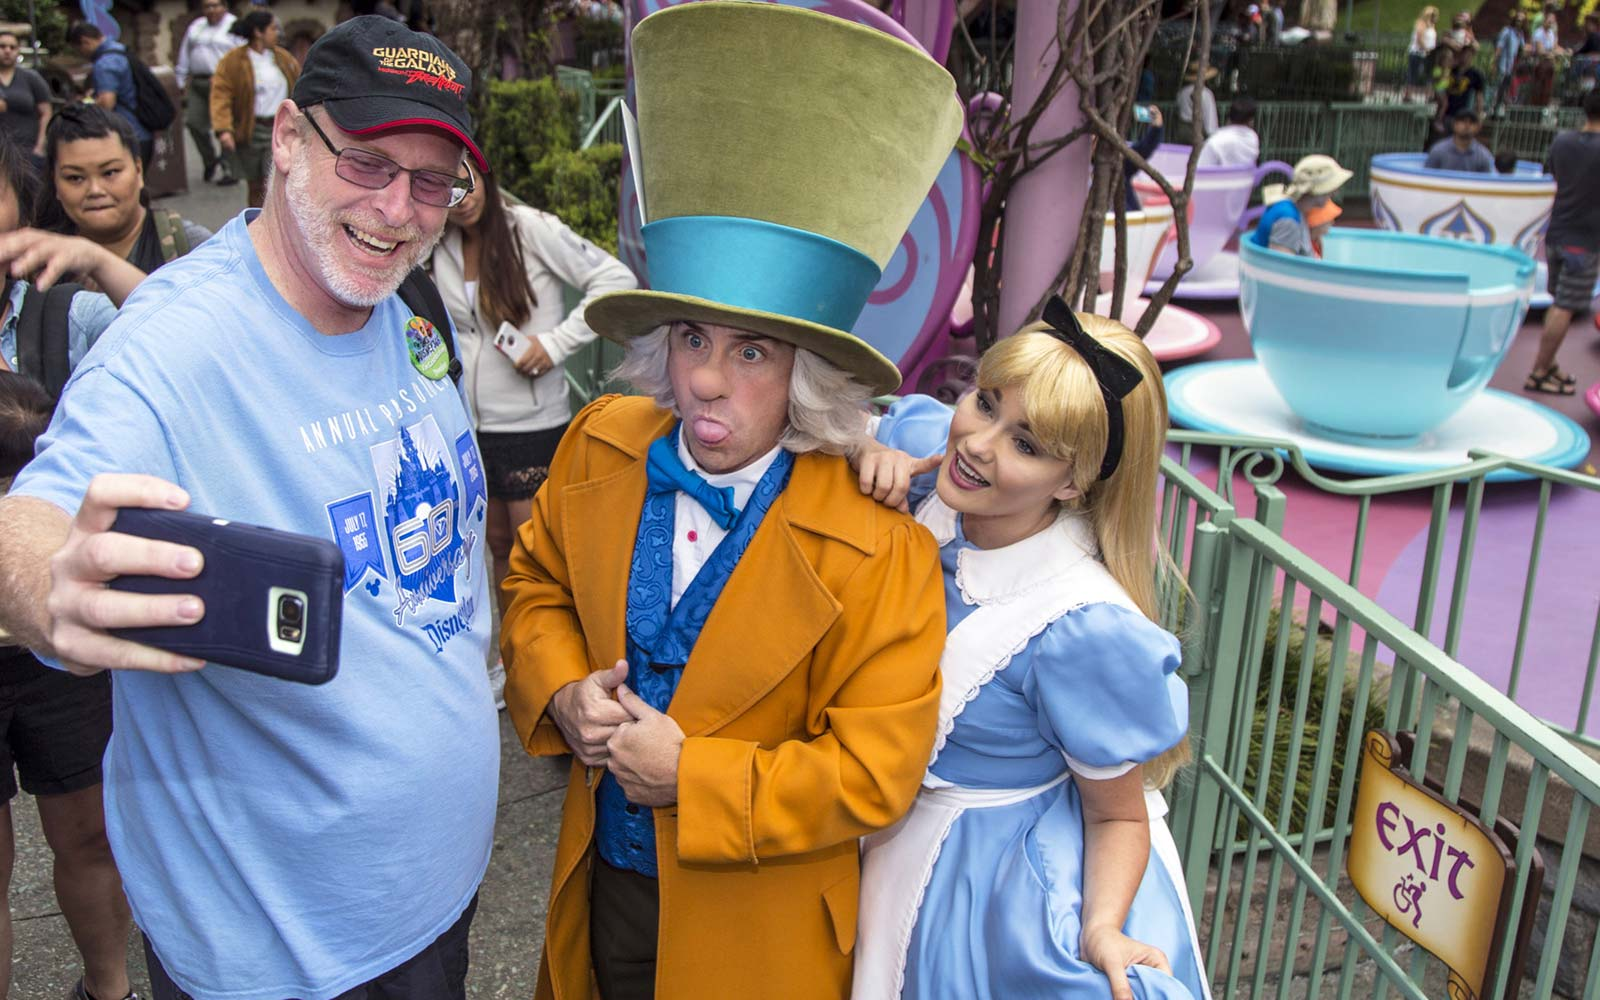 Huntington Beach resident Jeff Reitz, who has visited the parks of the Disneyland Resort every day since January 1, 2012